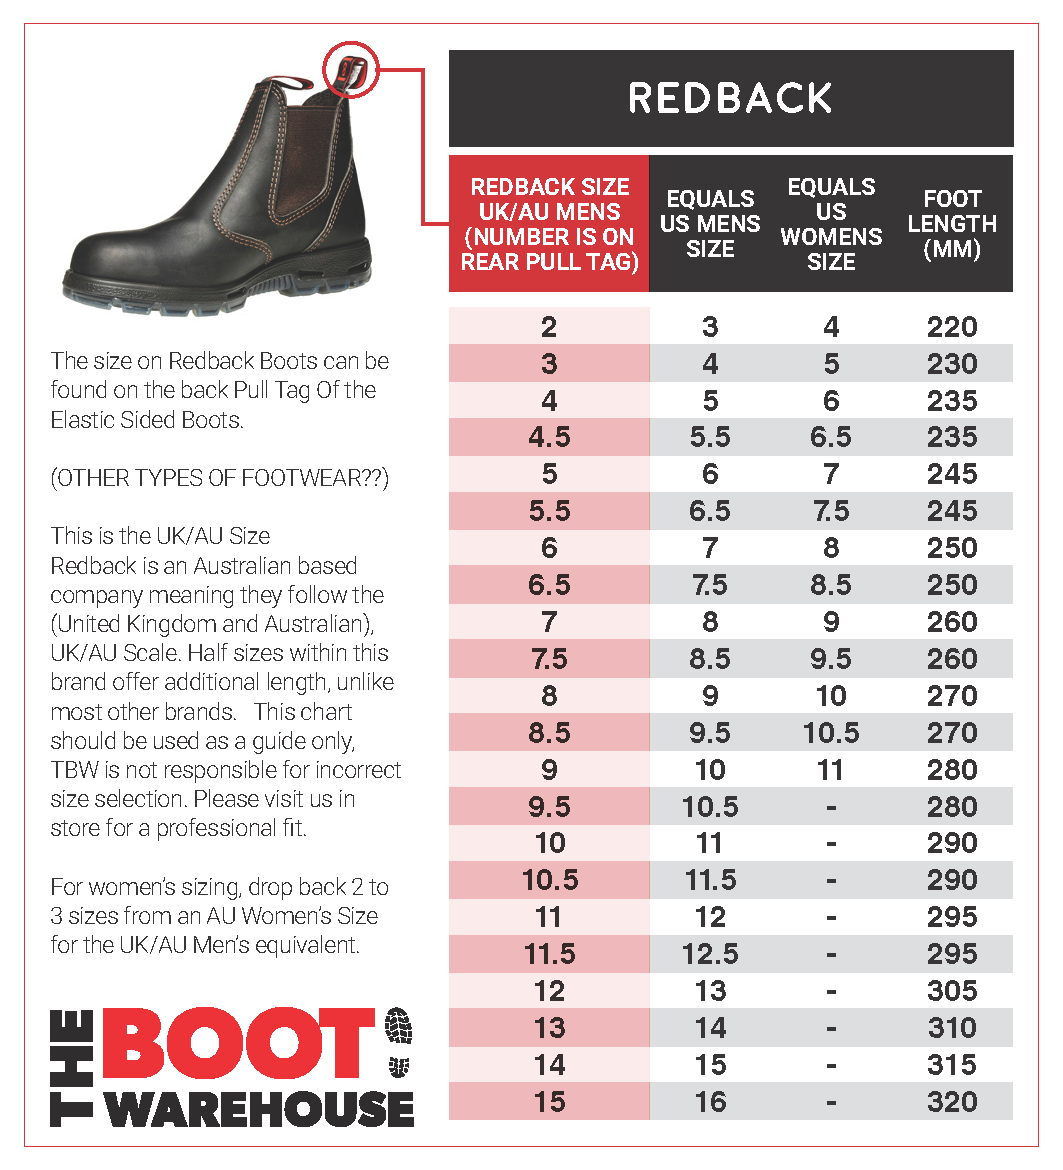 redback size guide